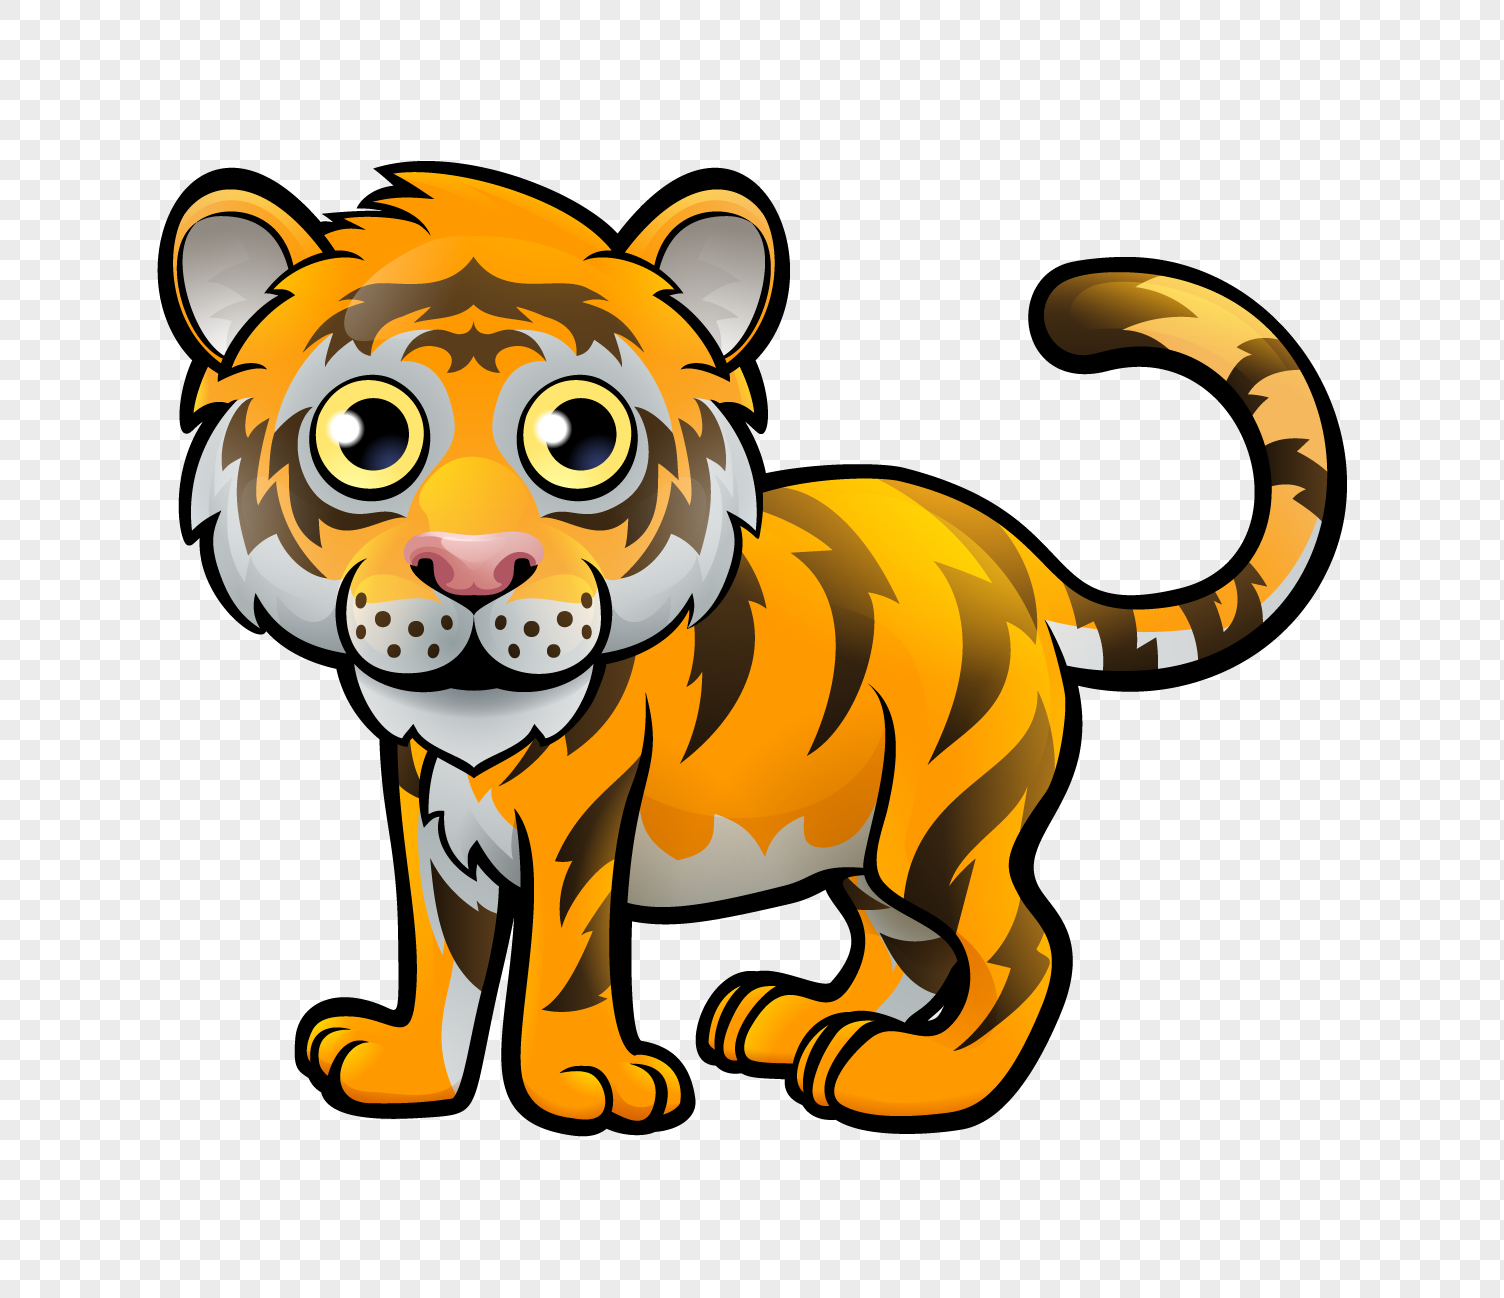 Cartoon tiger png image_picture free download 400591412 ...